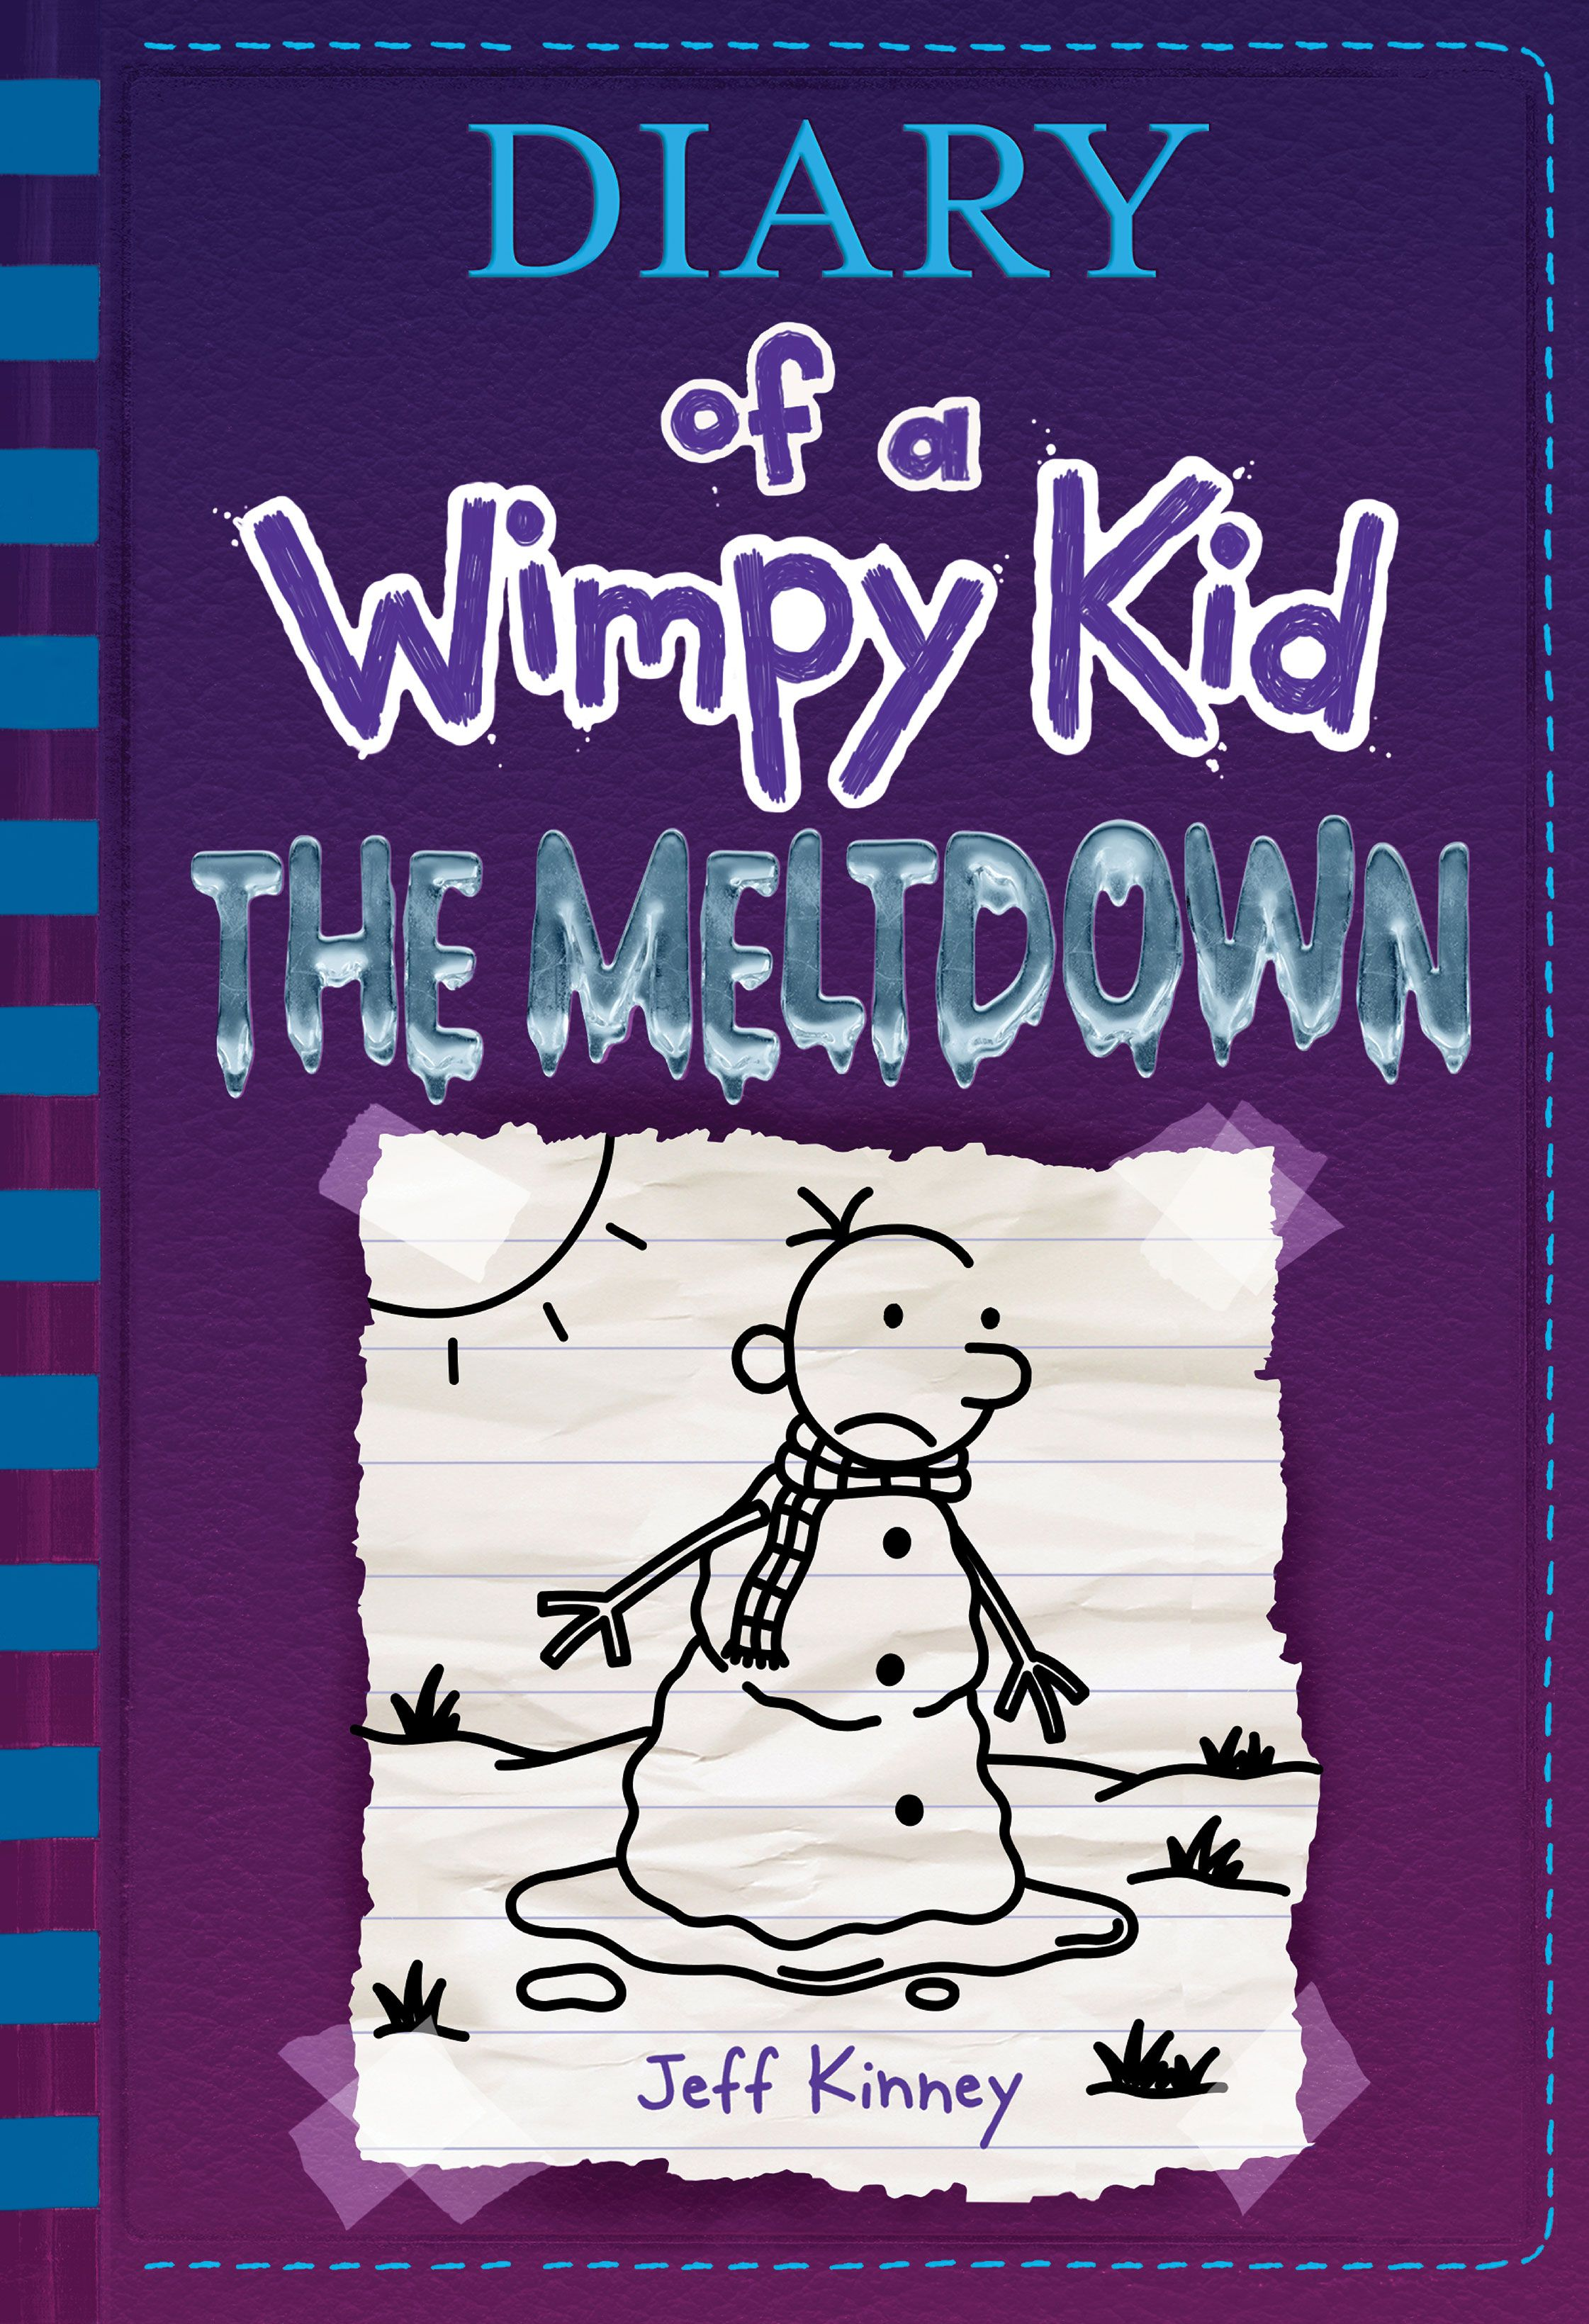 Exclusive cover reveal diary of a wimpy kid the meltdown its diary of a wimpy kid the meltdown its official solutioingenieria Gallery